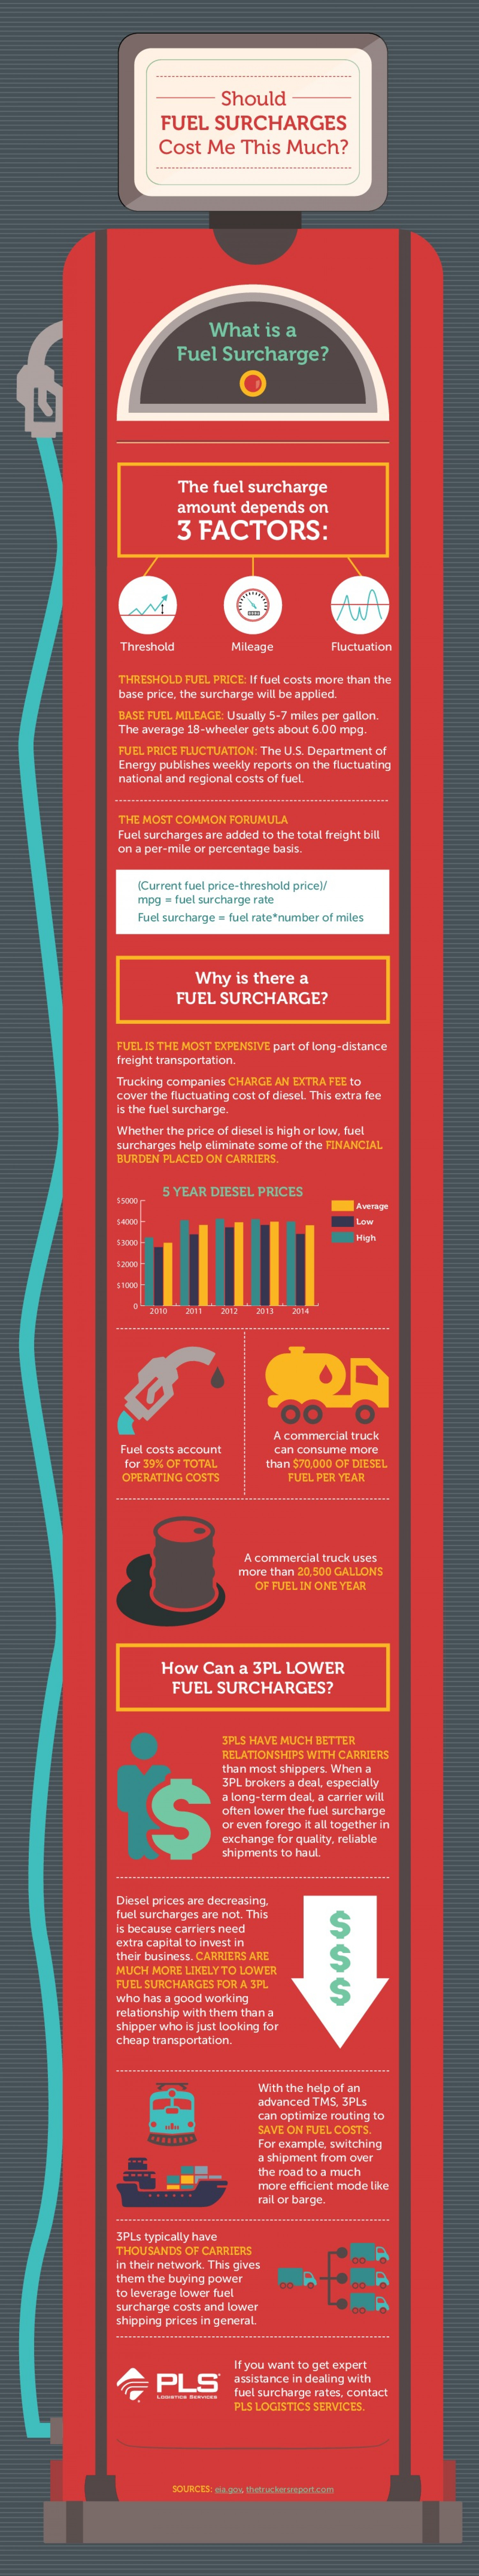 Should Fuel Surcharges Cost Me This Much? Infographic